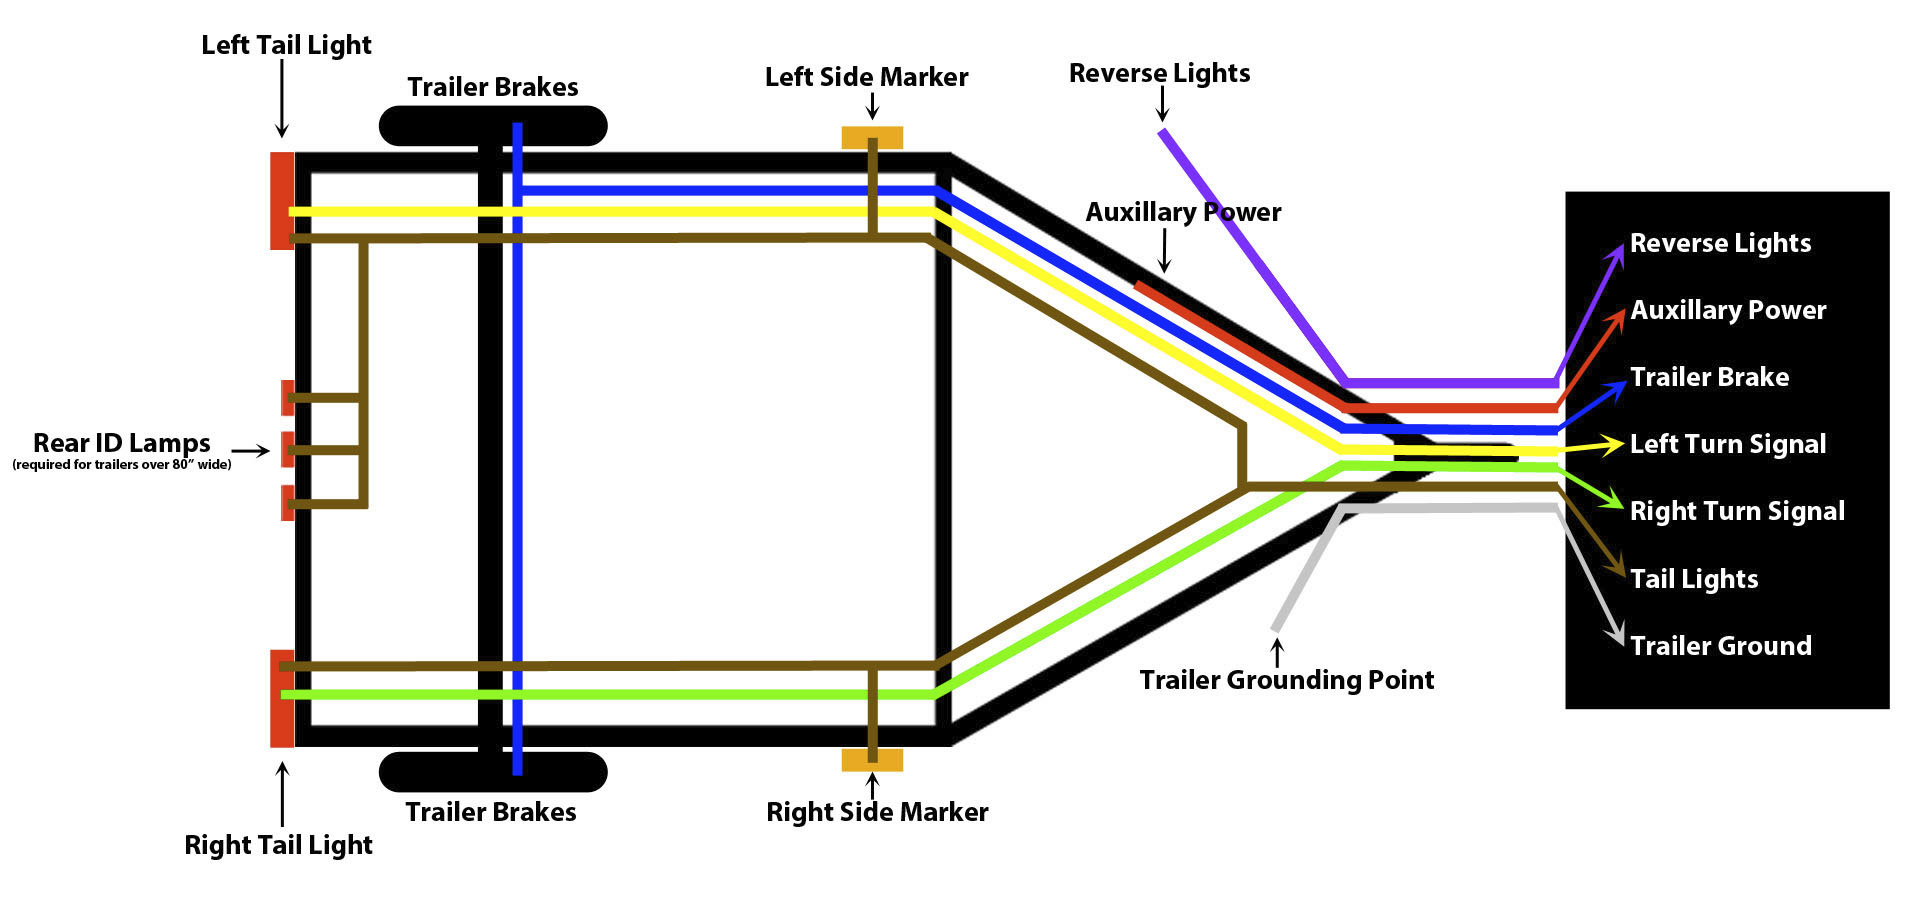 How To Wire Trailer Lights - Trailer Wiring Guide & Videos - Trailer Wiring 4 Pin Diagram